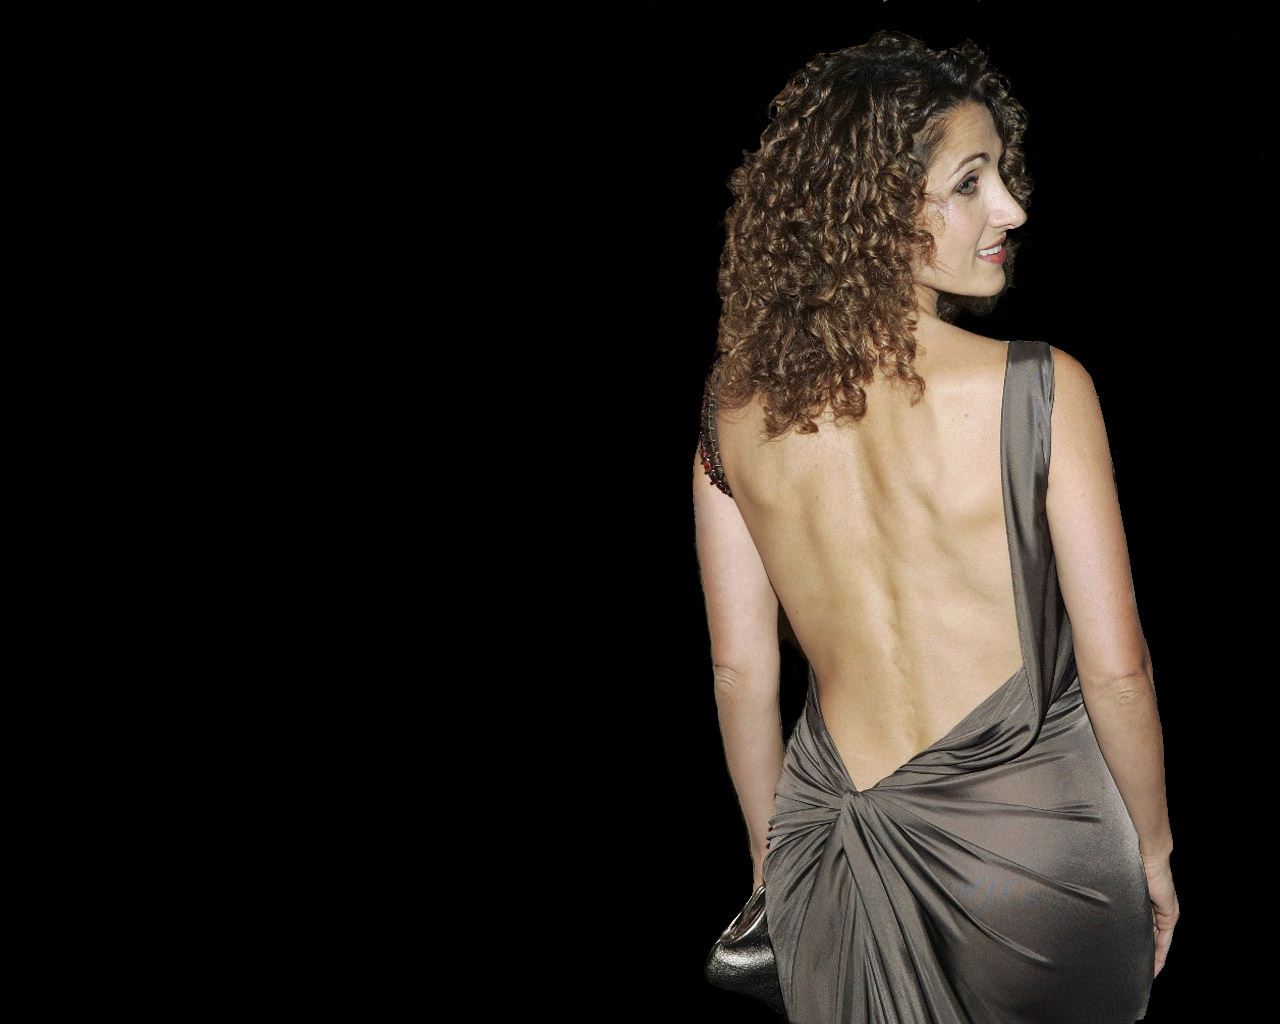 http://images2.fanpop.com/images/photos/2900000/Grey-dress1-melina-kanakaredes-2960790-1280-1024.jpg